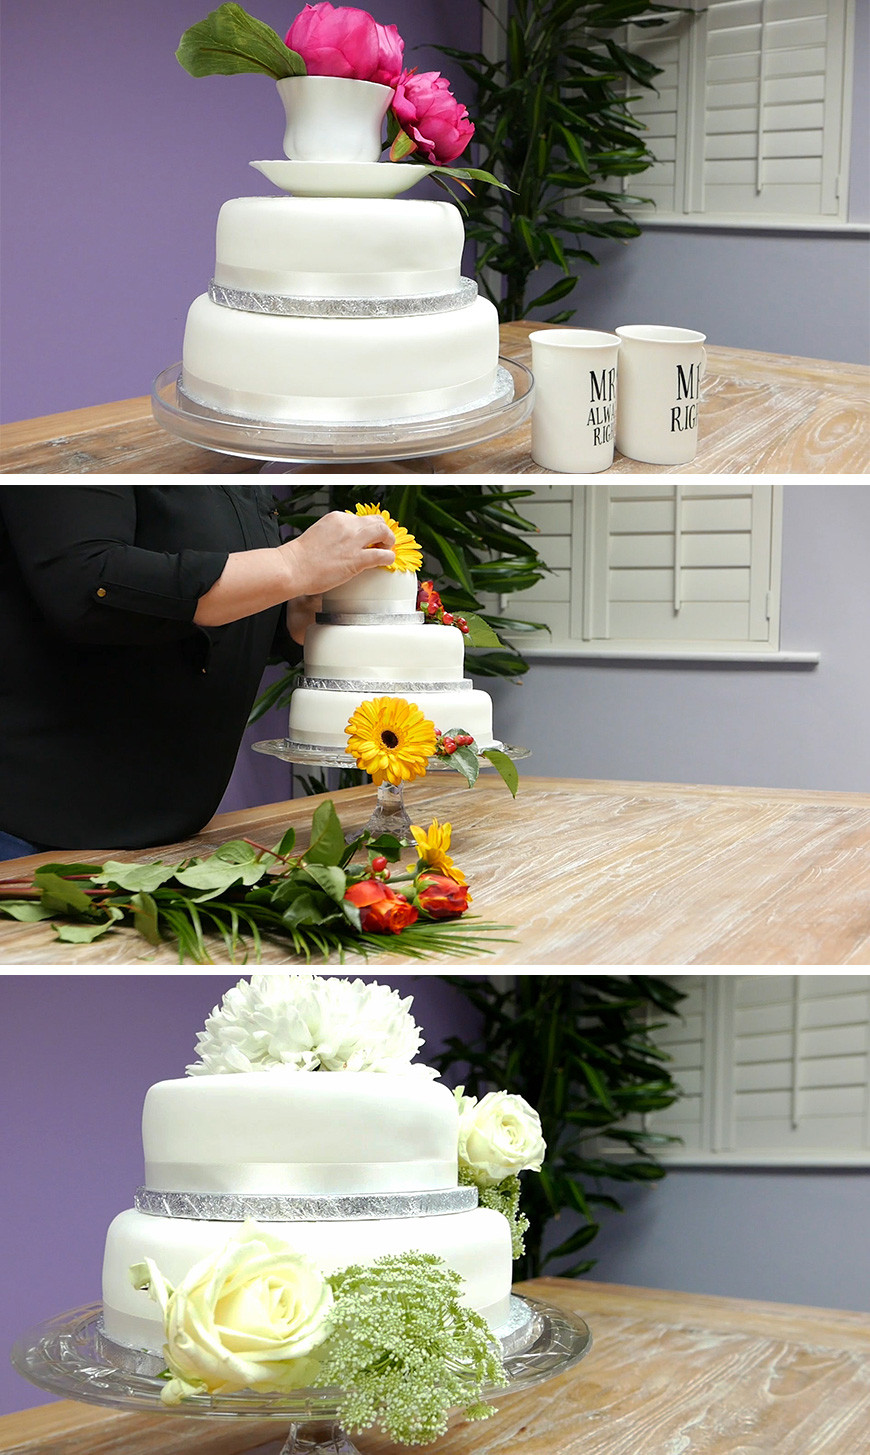 Best ideas about DIY Wedding Cakes . Save or Pin Amazing DIY Wedding Cakes For Under £100 Now.